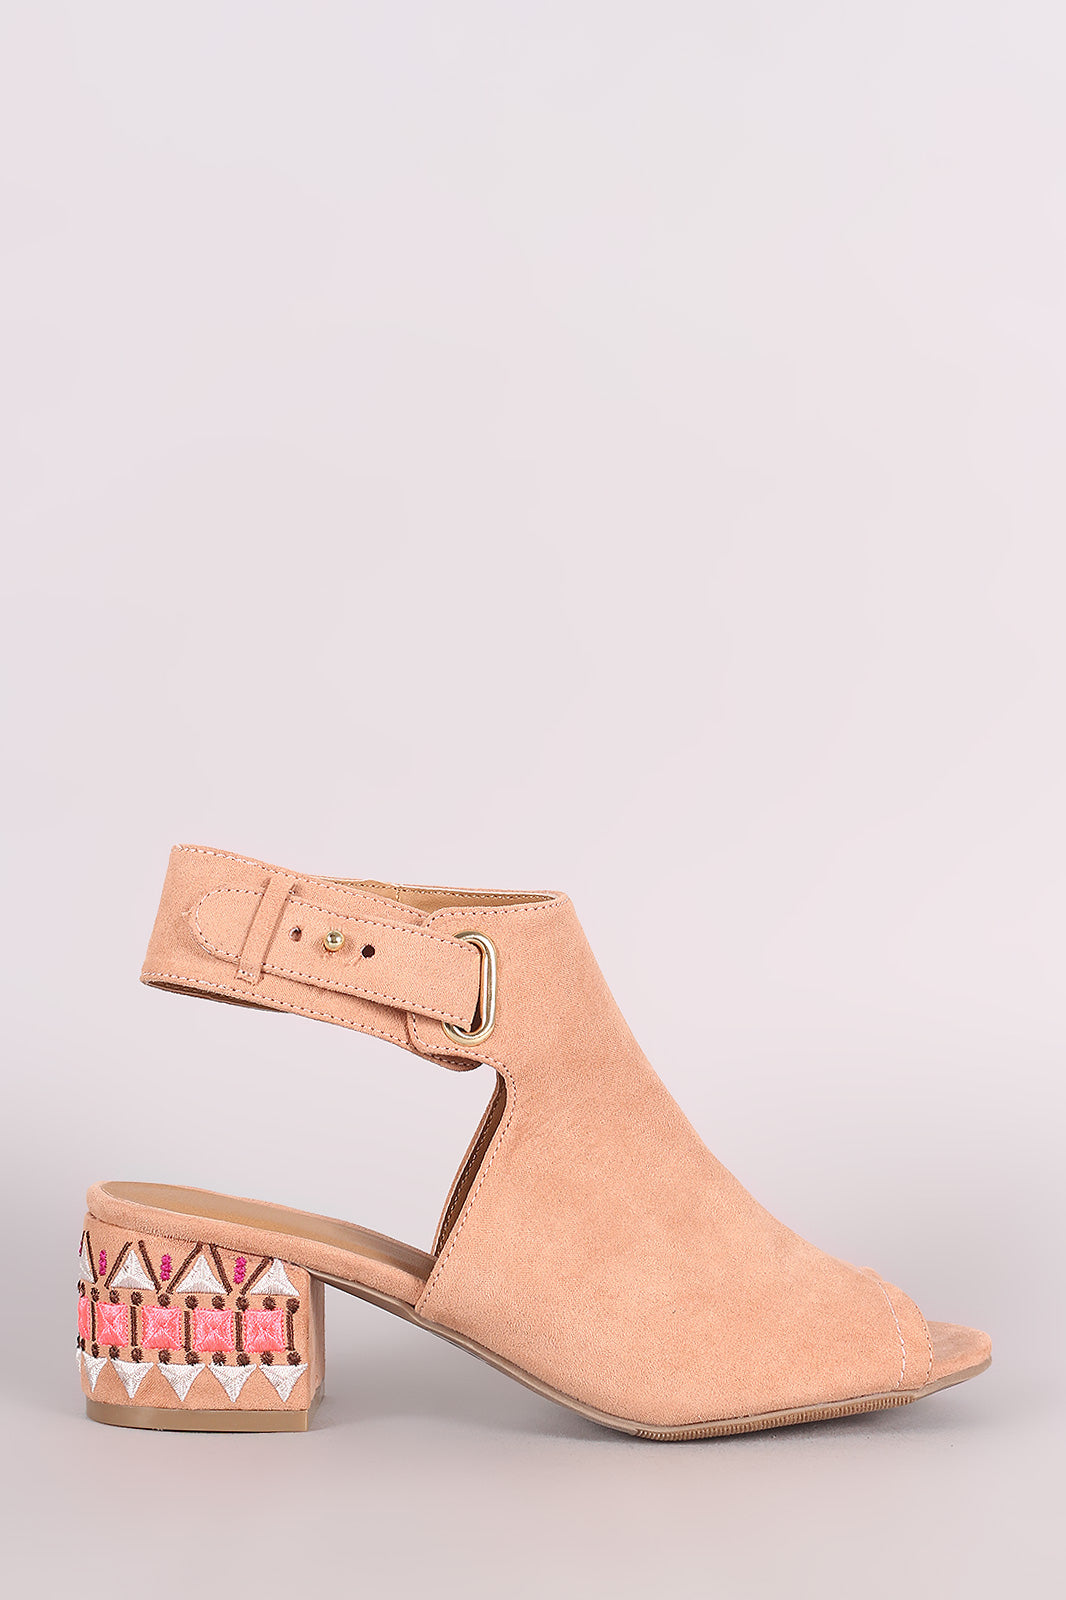 Qupid Suede Embroidery Mule Blocked Heel